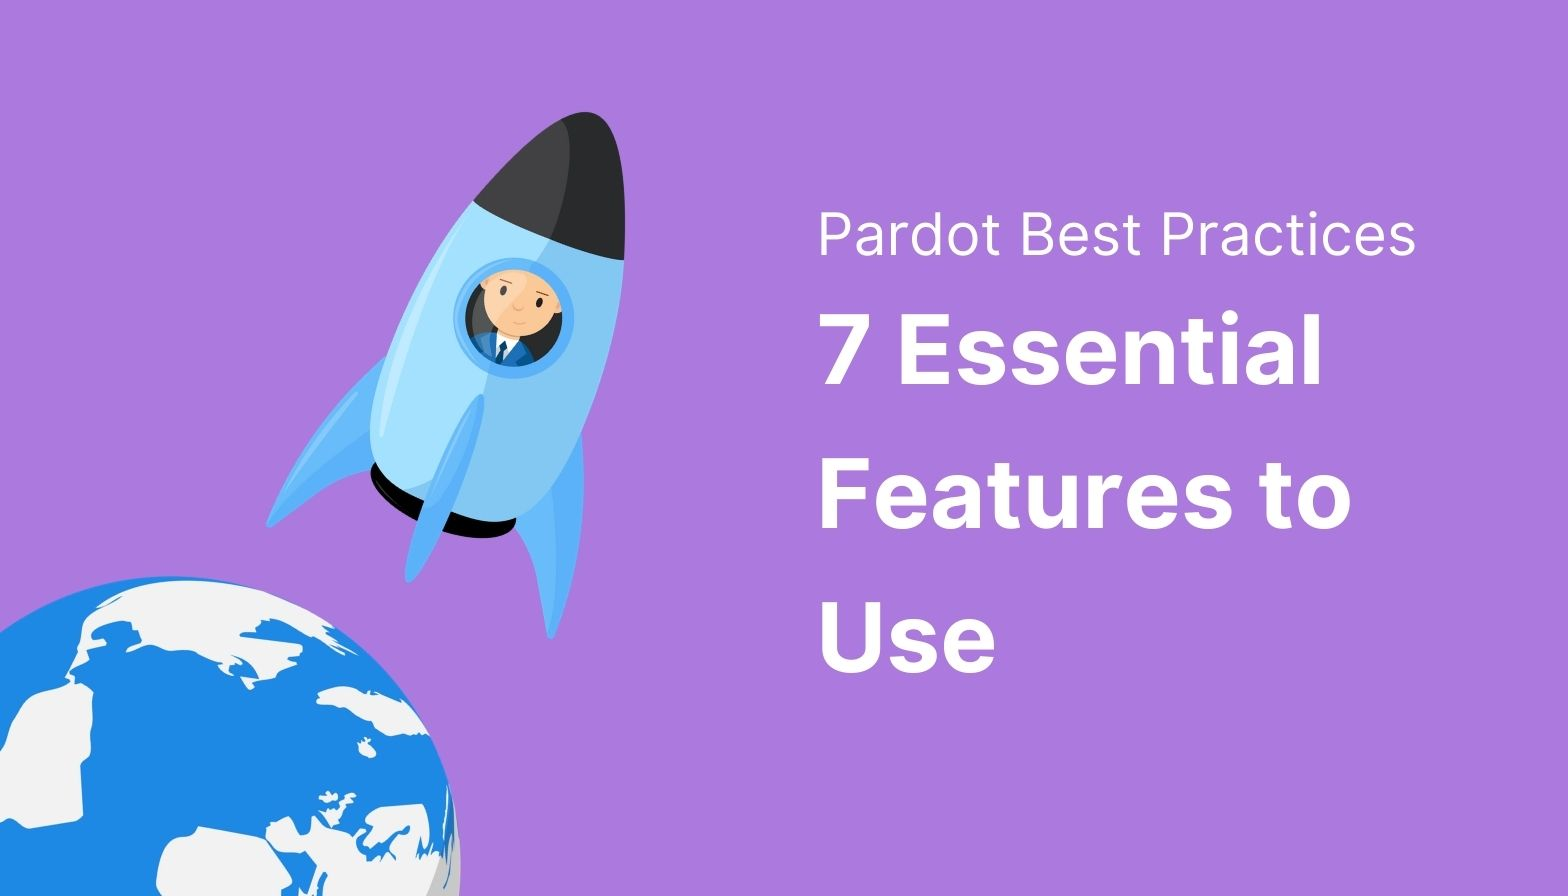 Pardot Best Practices: 7 Essential Features to Use